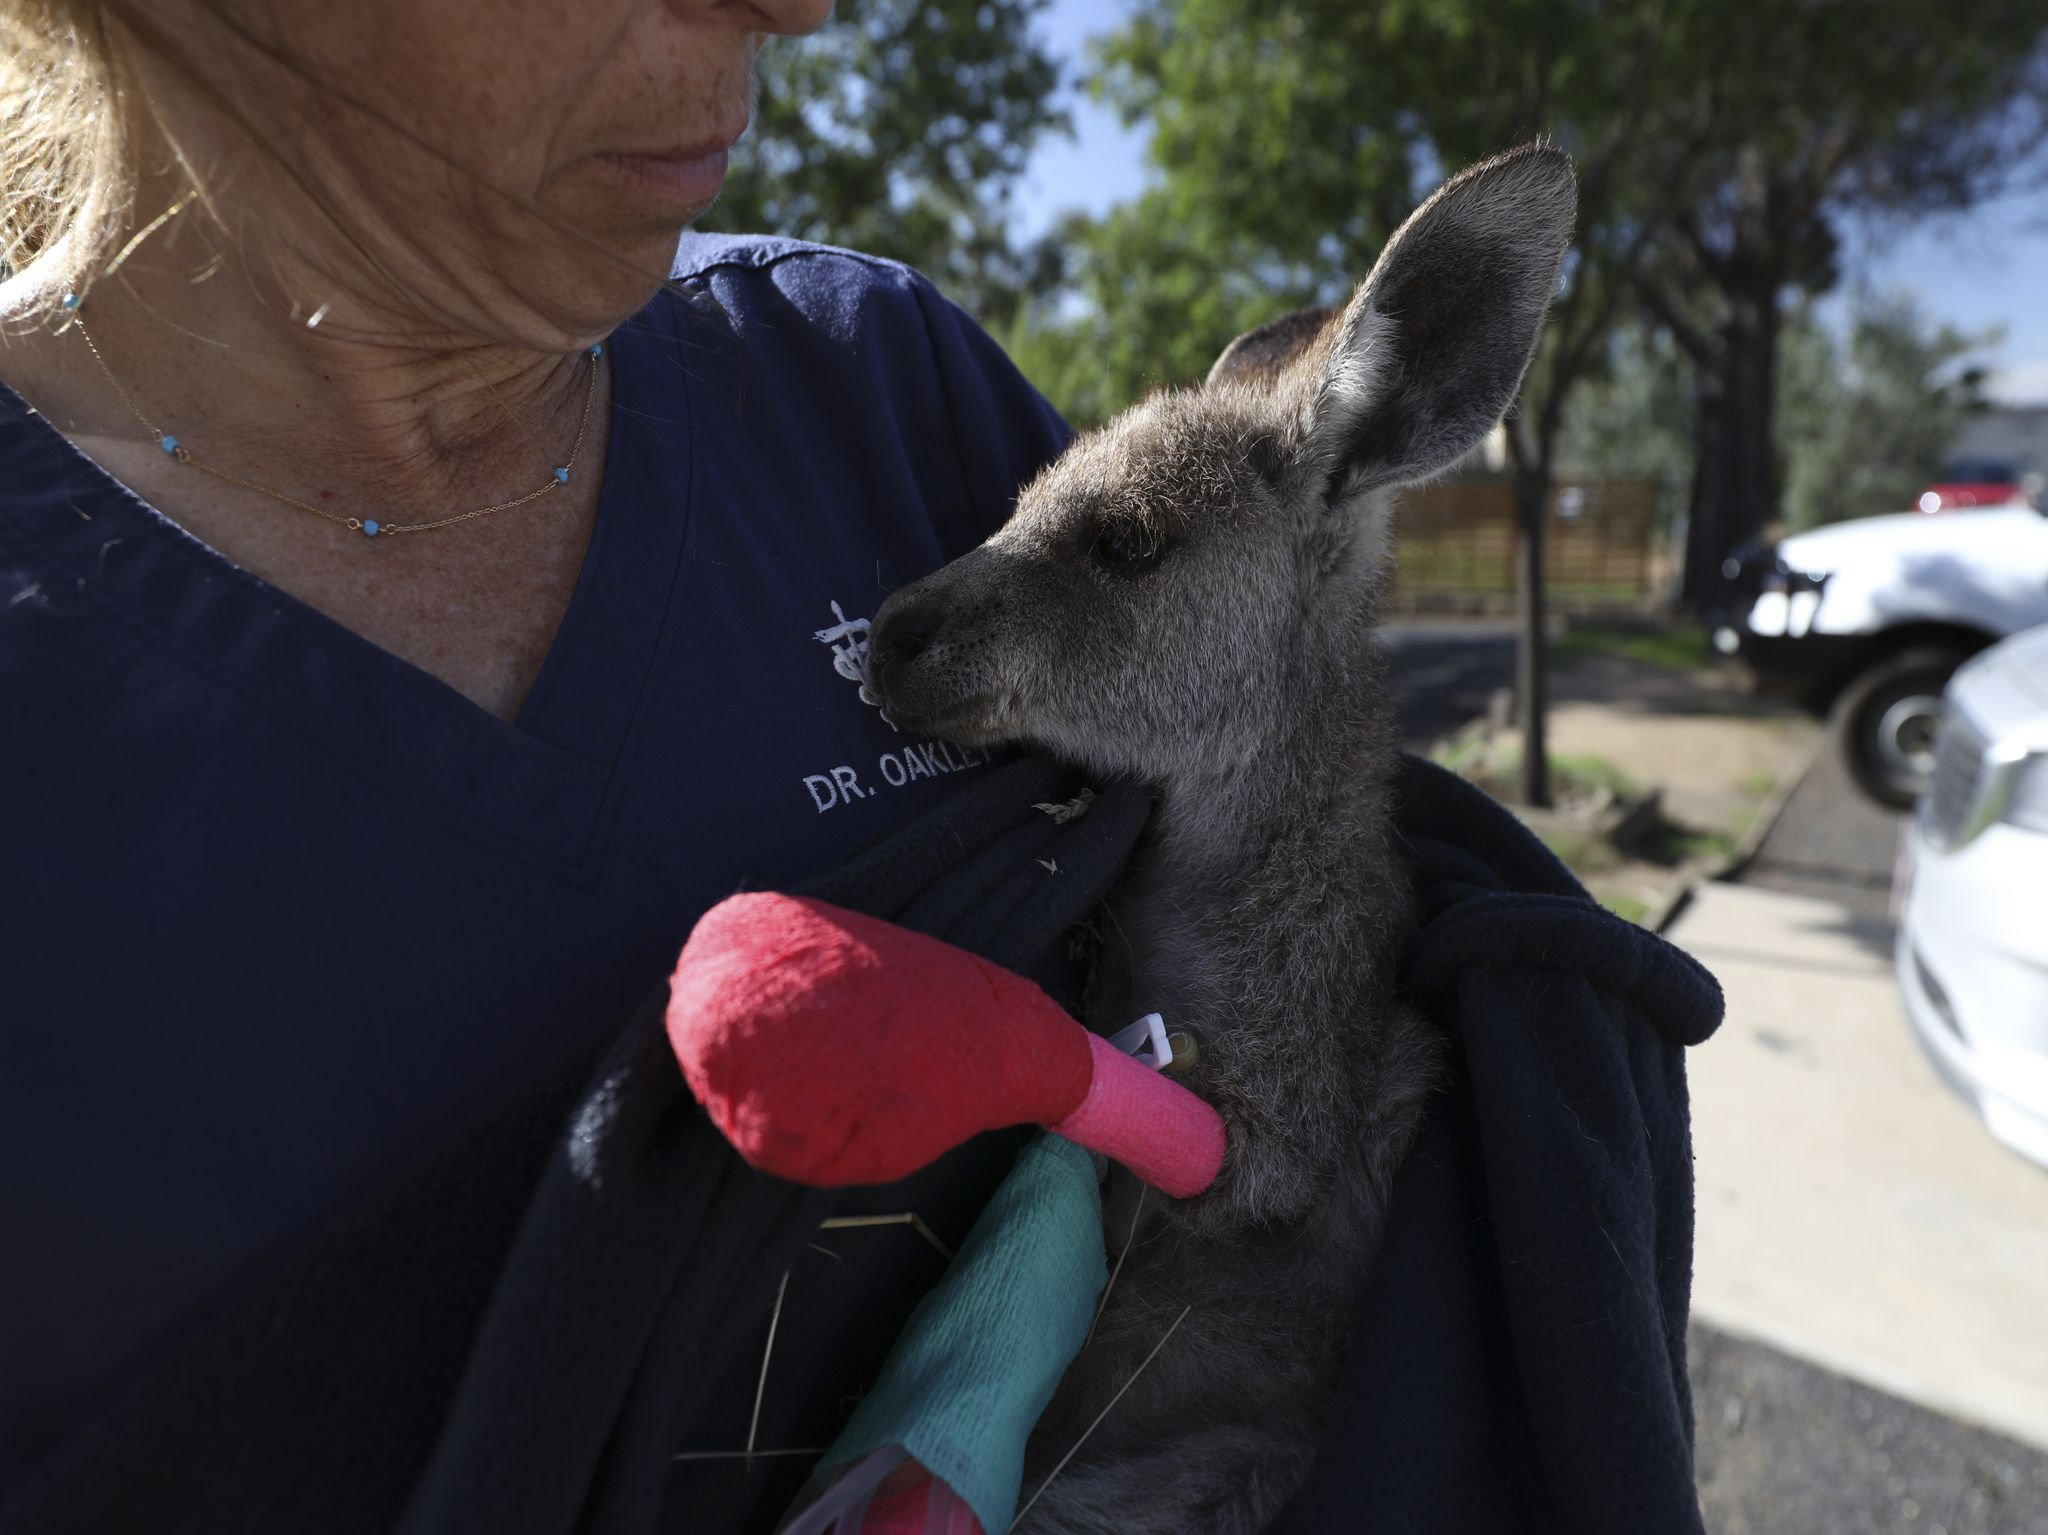 Dr. Michelle Oakley holds a recovering kangaroo. This image is from Dr. Oakley, Yukon Vet. [Photo of the day - November 2020]